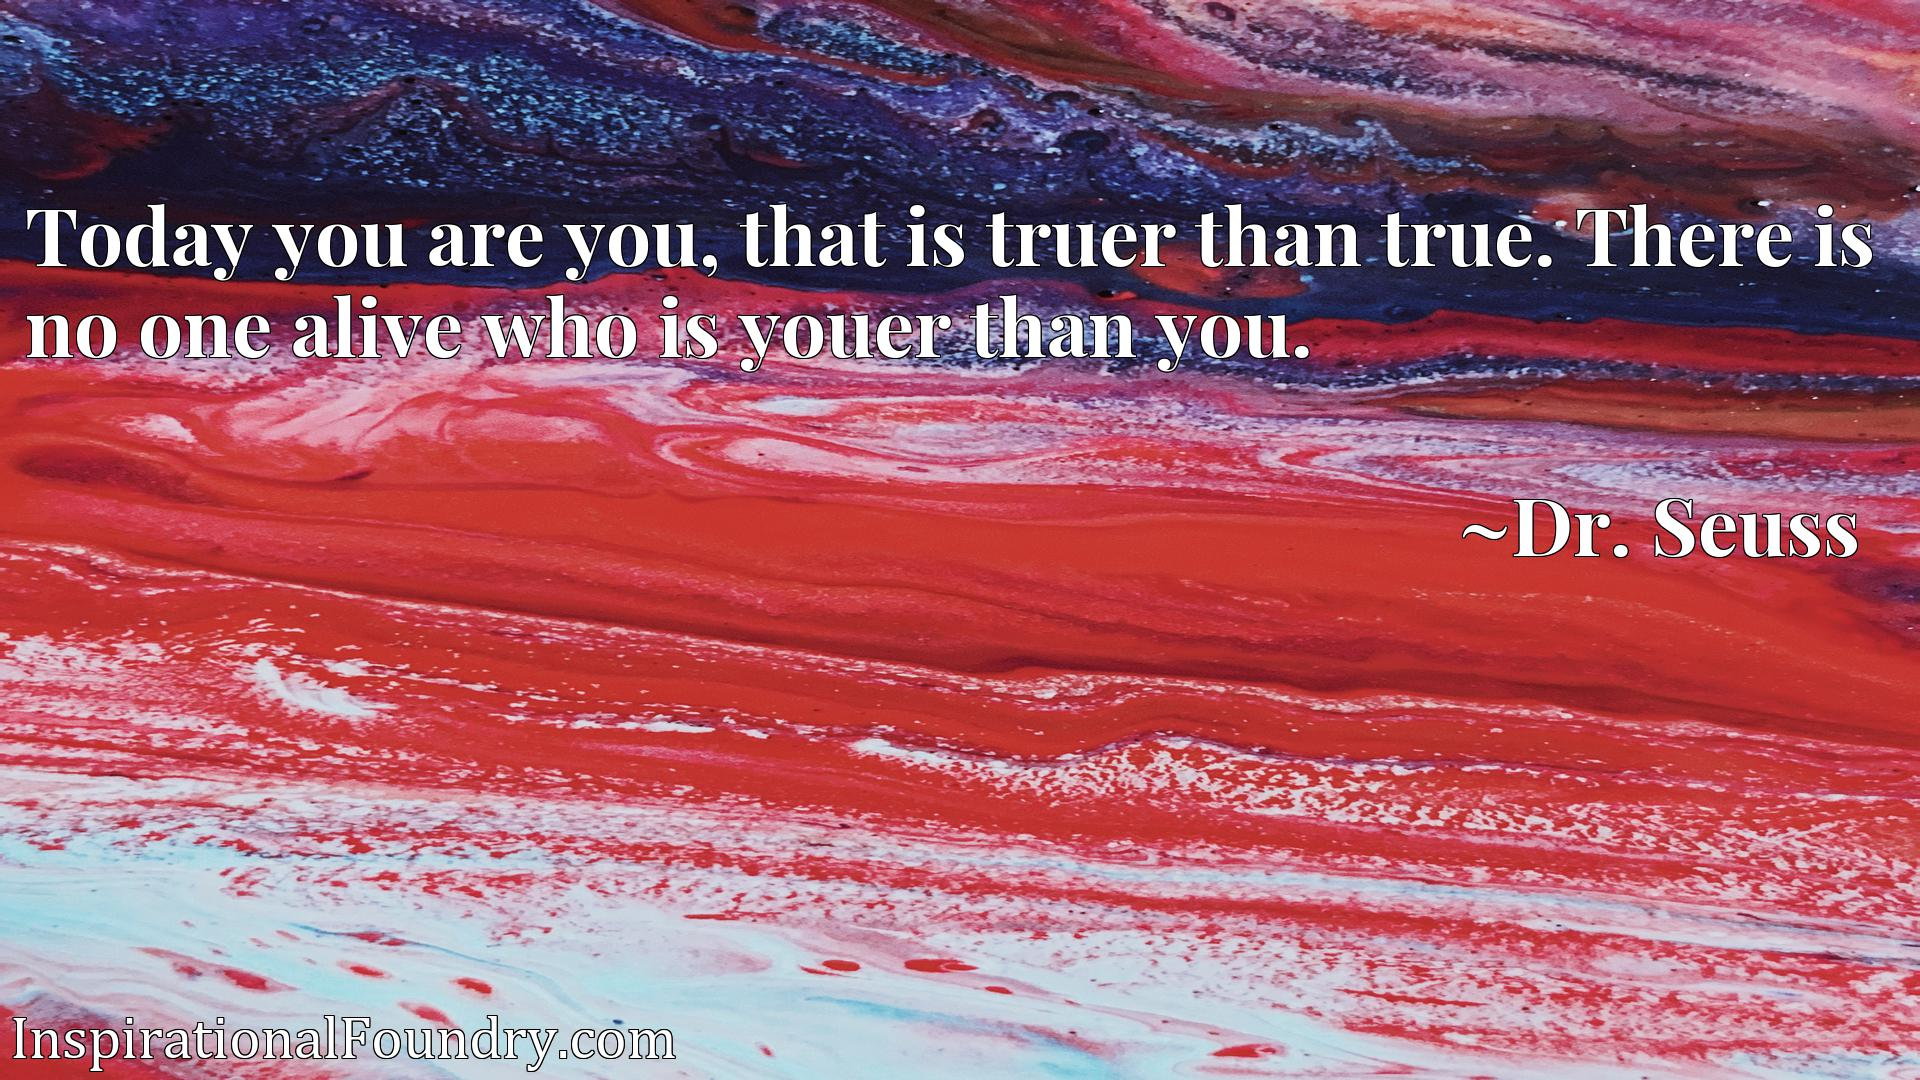 Quote Picture :Today you are you, that is truer than true. There is no one alive who is youer than you.